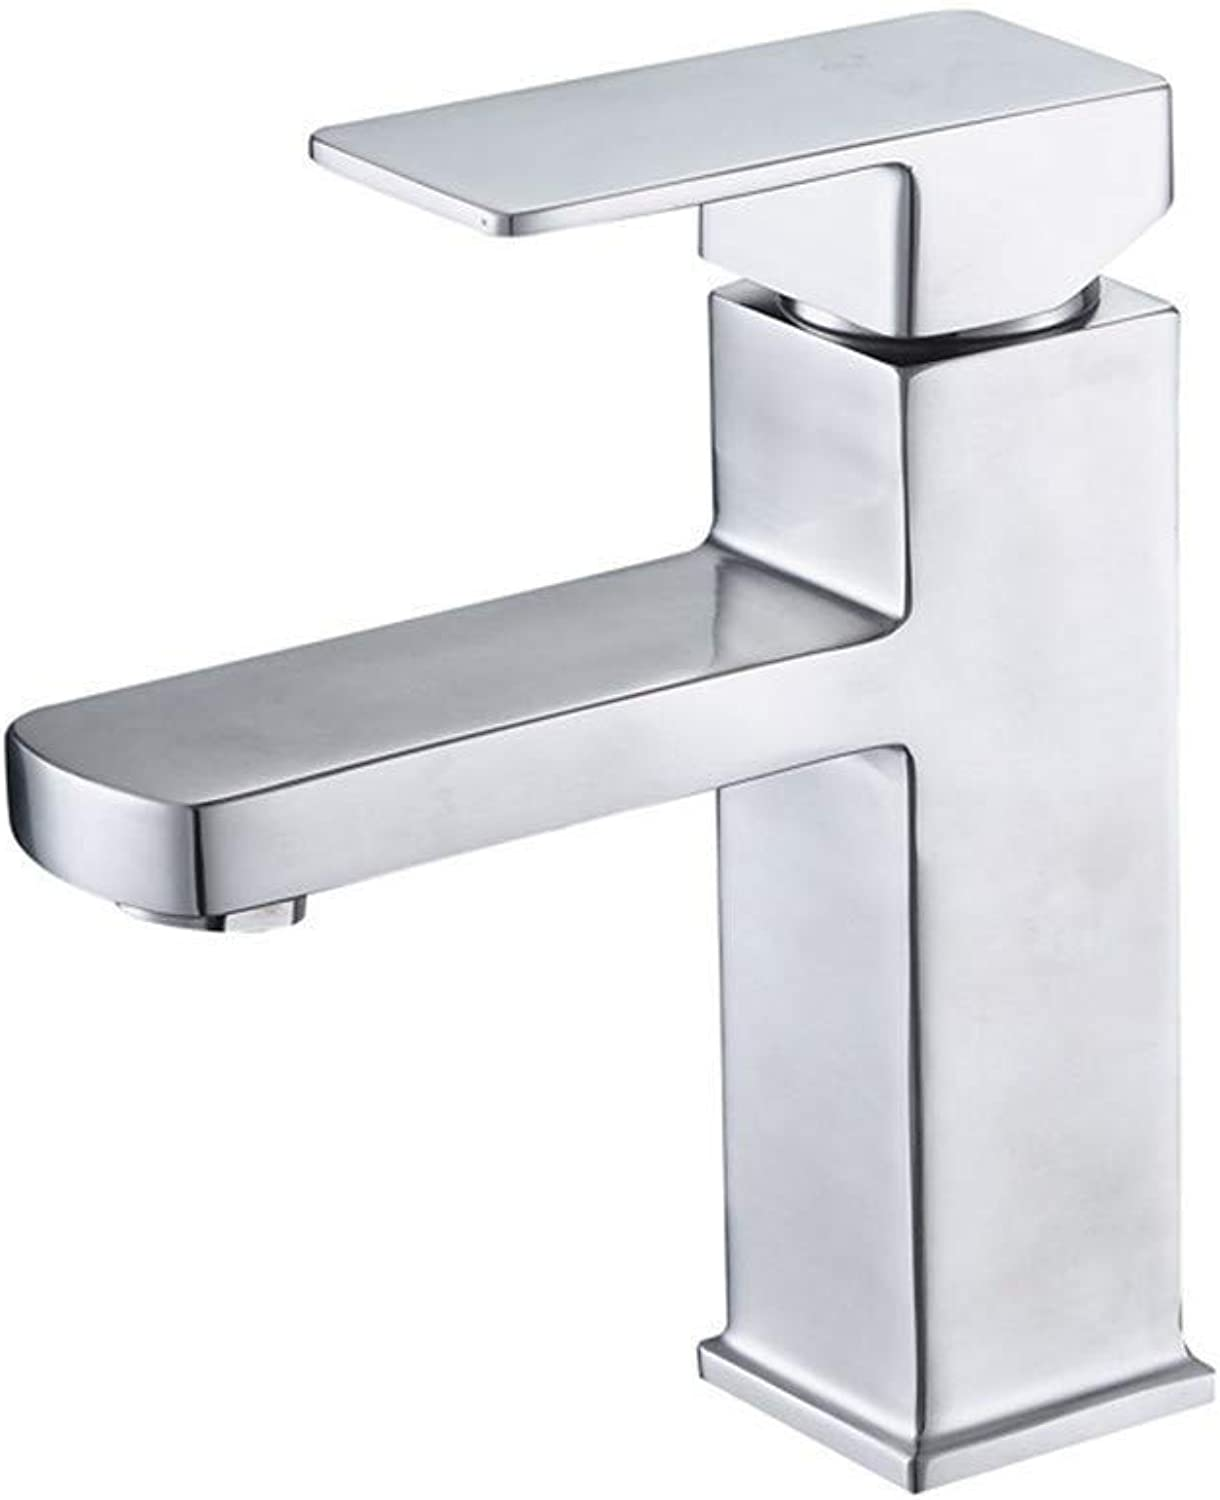 Water Tap Modern Bathroom Bathroom Single Handle Hot and Cold Square Single Hole Faucet 304 Stainless Steel Square Washbasin Sink Faucet